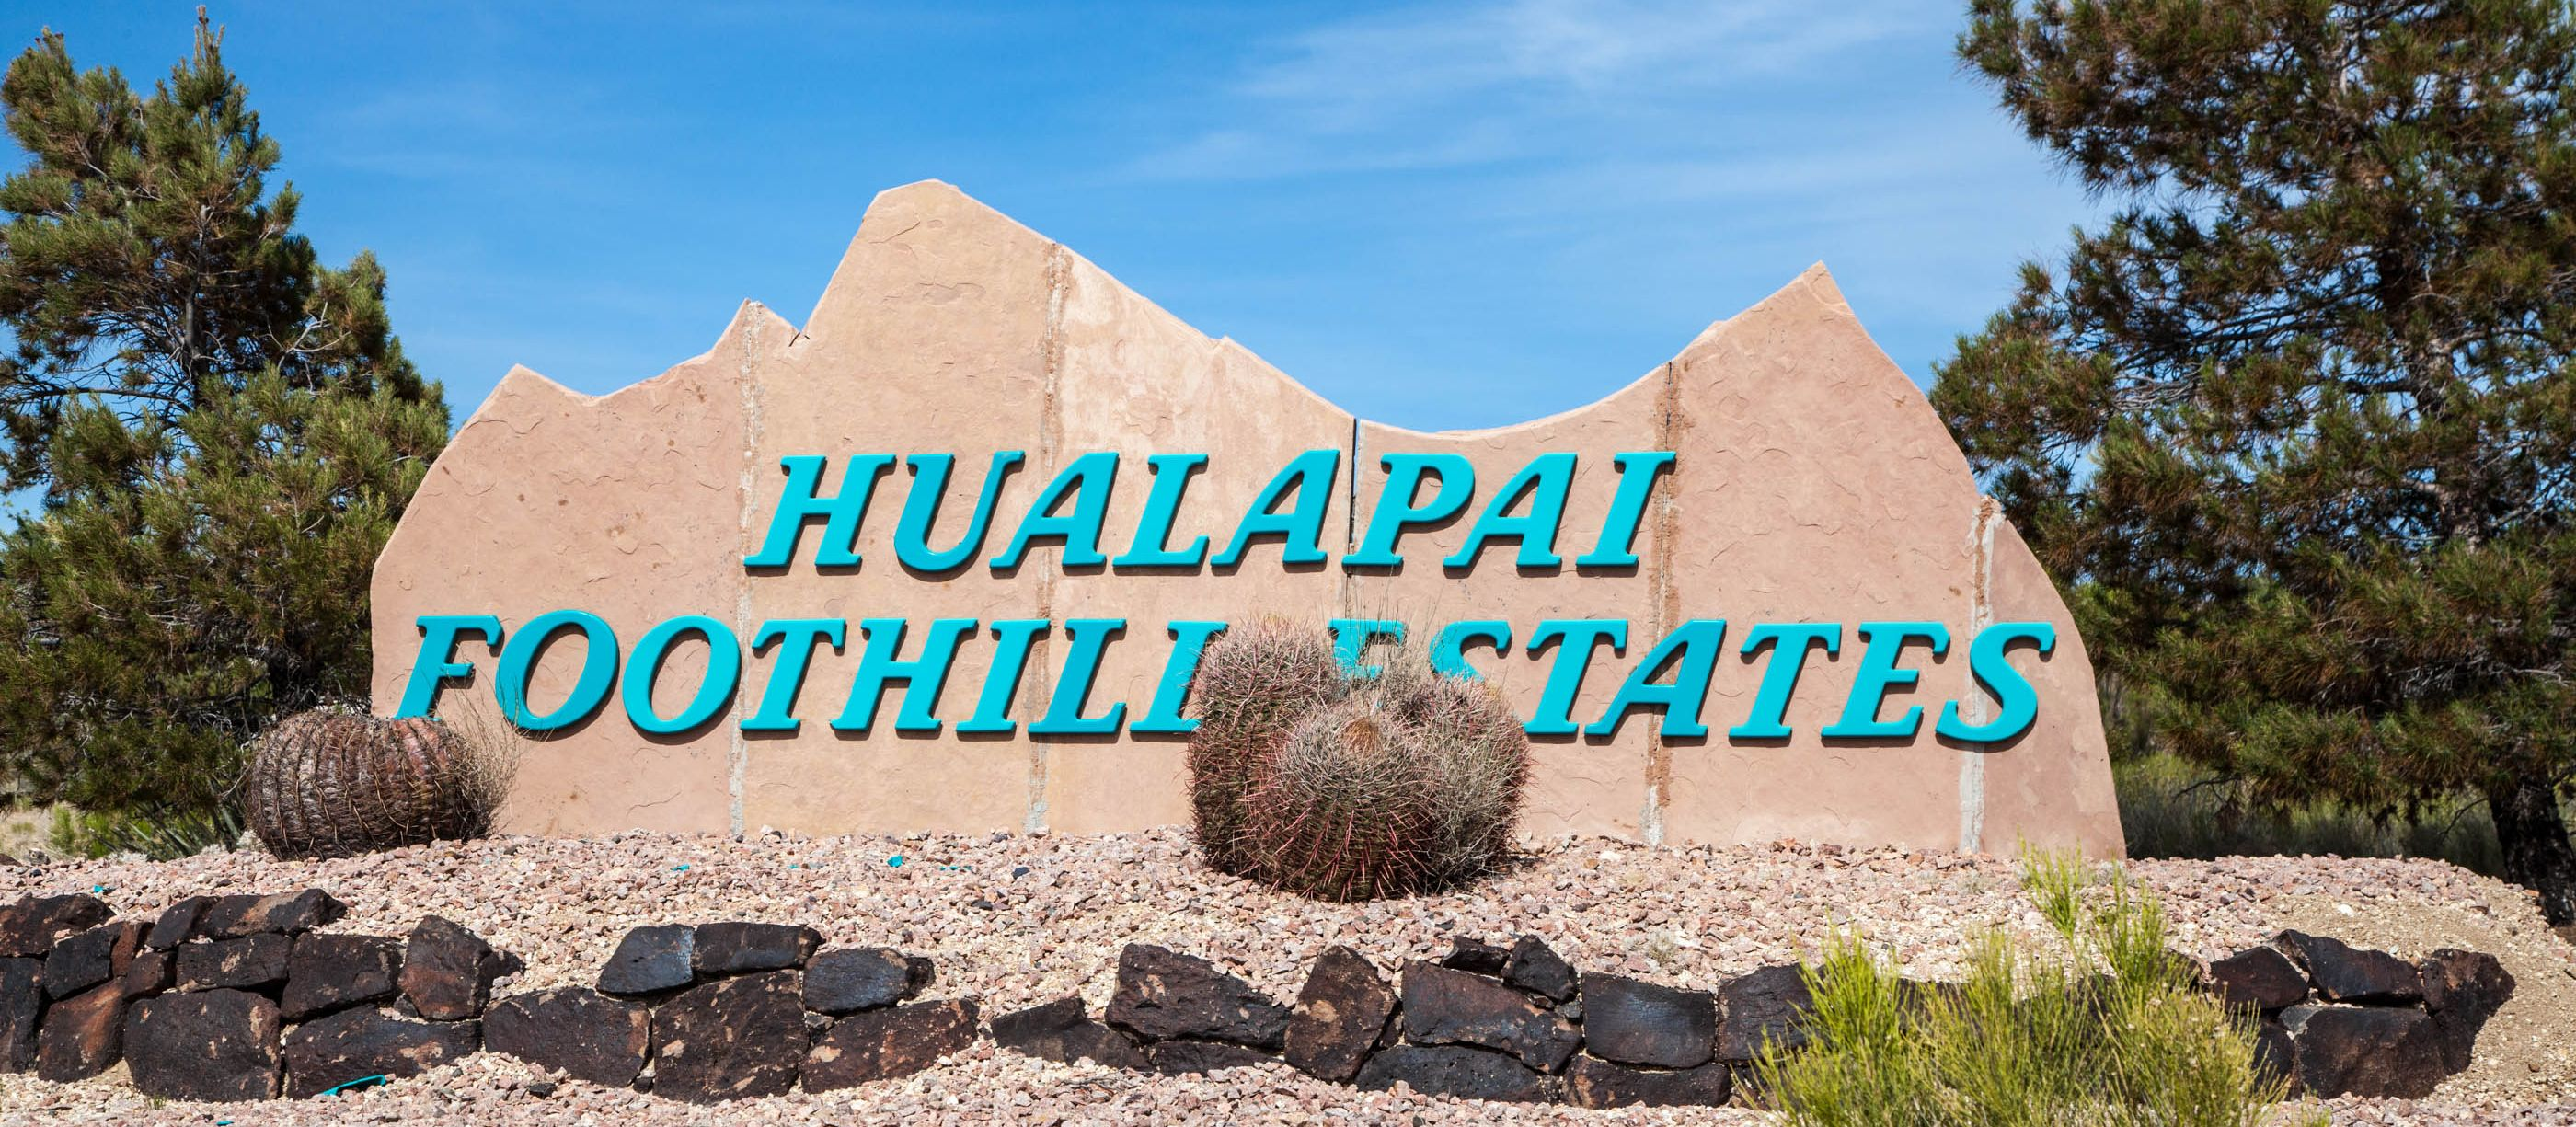 Hualapai Foothills Estates